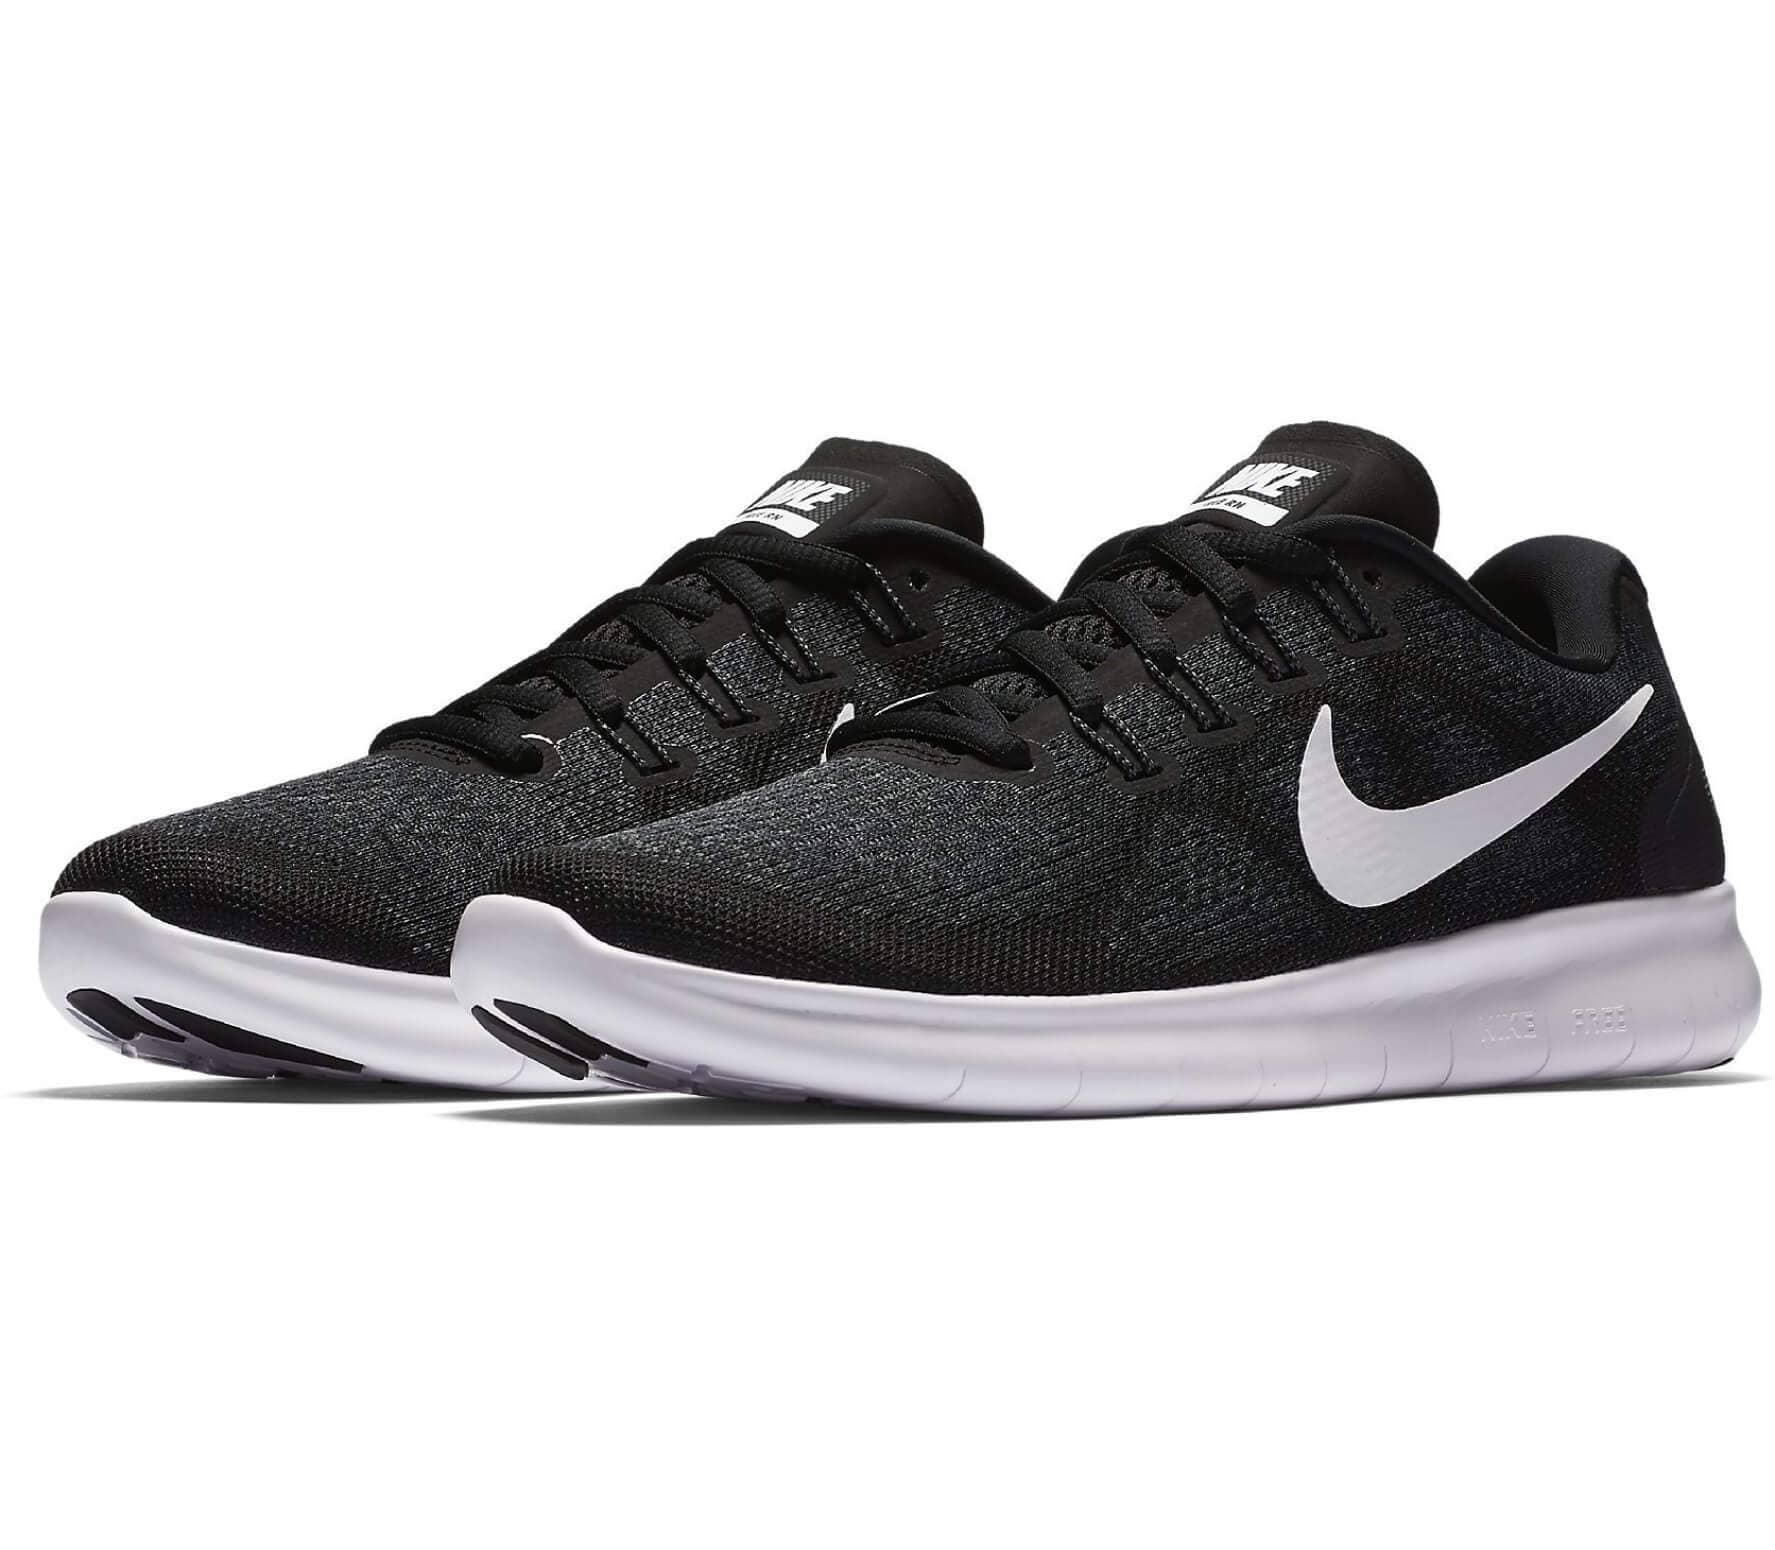 official photos b5ca4 a9d84 Nike - Free RN 2 women s running shoes (black white)